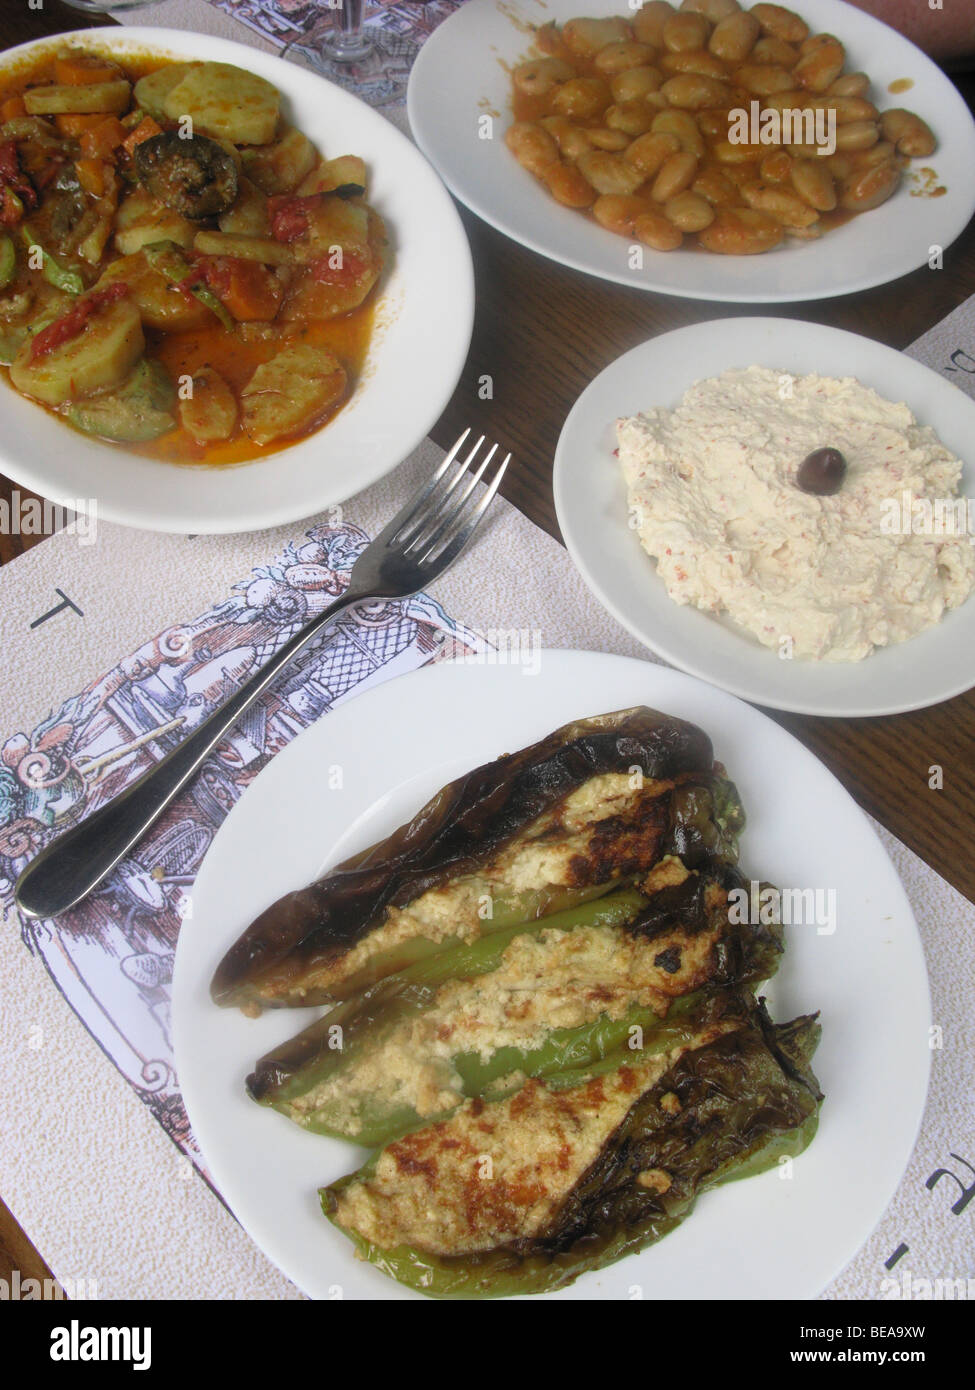 Greek Food. Stuffed Peppers, Briam, Giant Beans and Spicy Cheese dip. - Stock Image